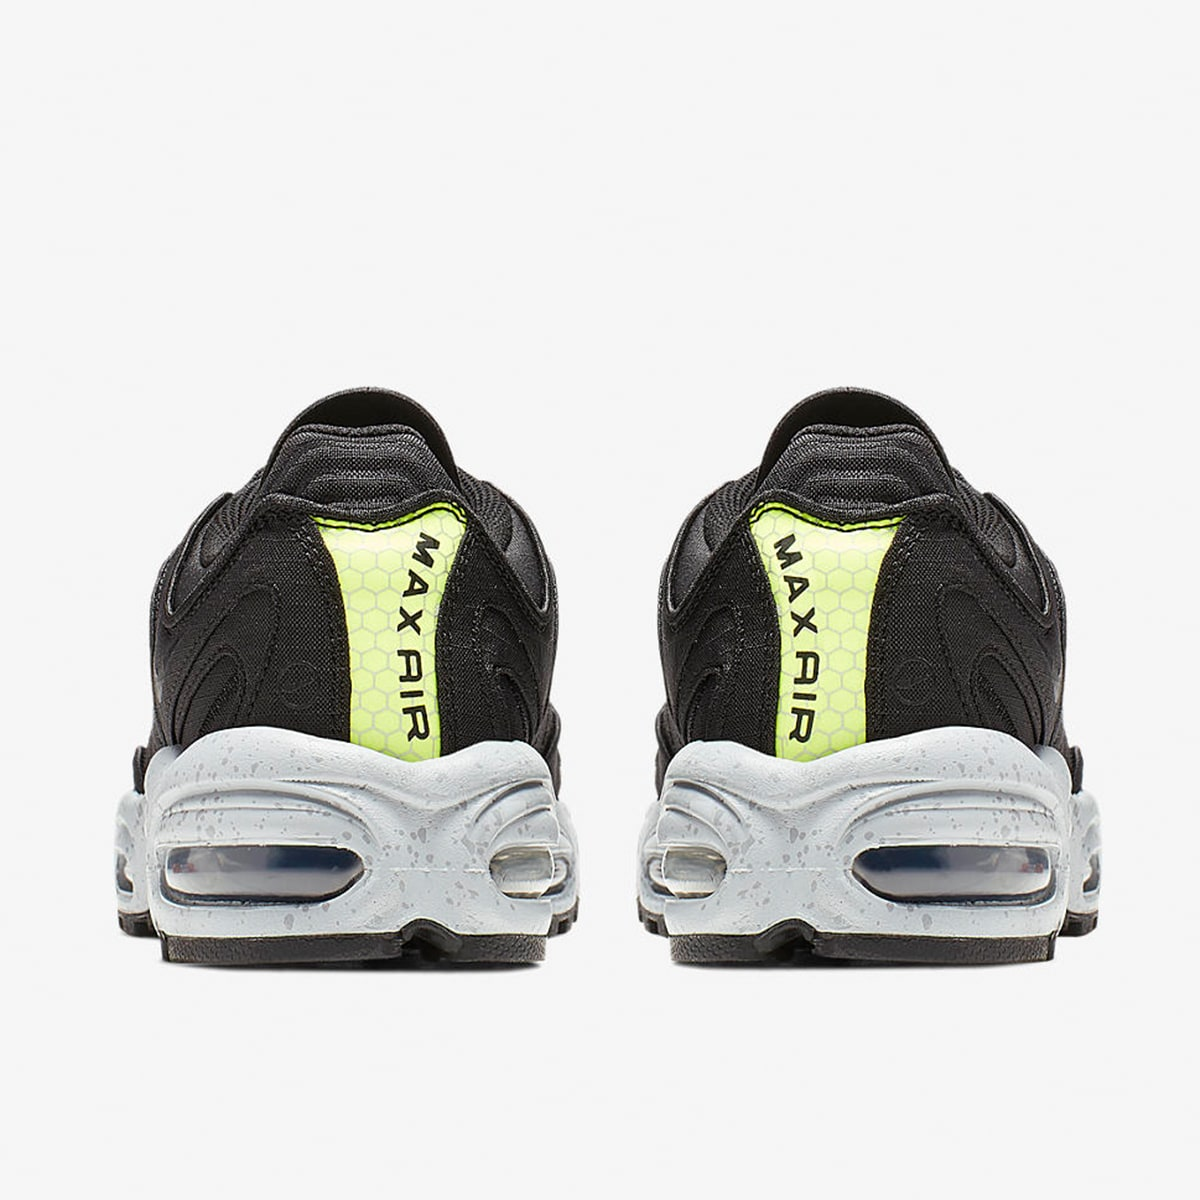 ddc35633529c92 END. Features | Nike Air Max Tailwind IV SP - Register Now on END ...